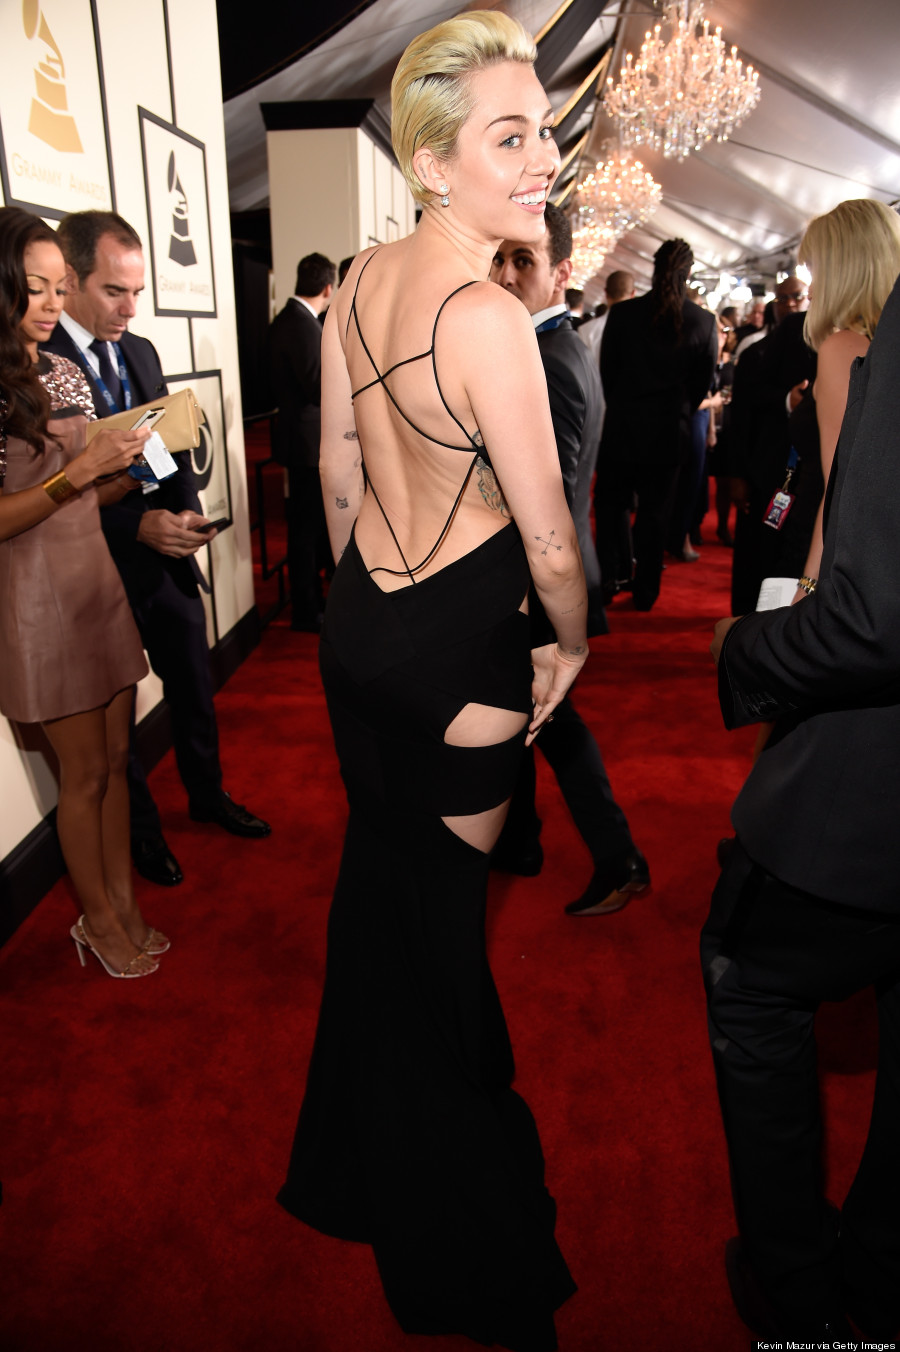 Miley cyrus sexy black dress, sex tit suck ass